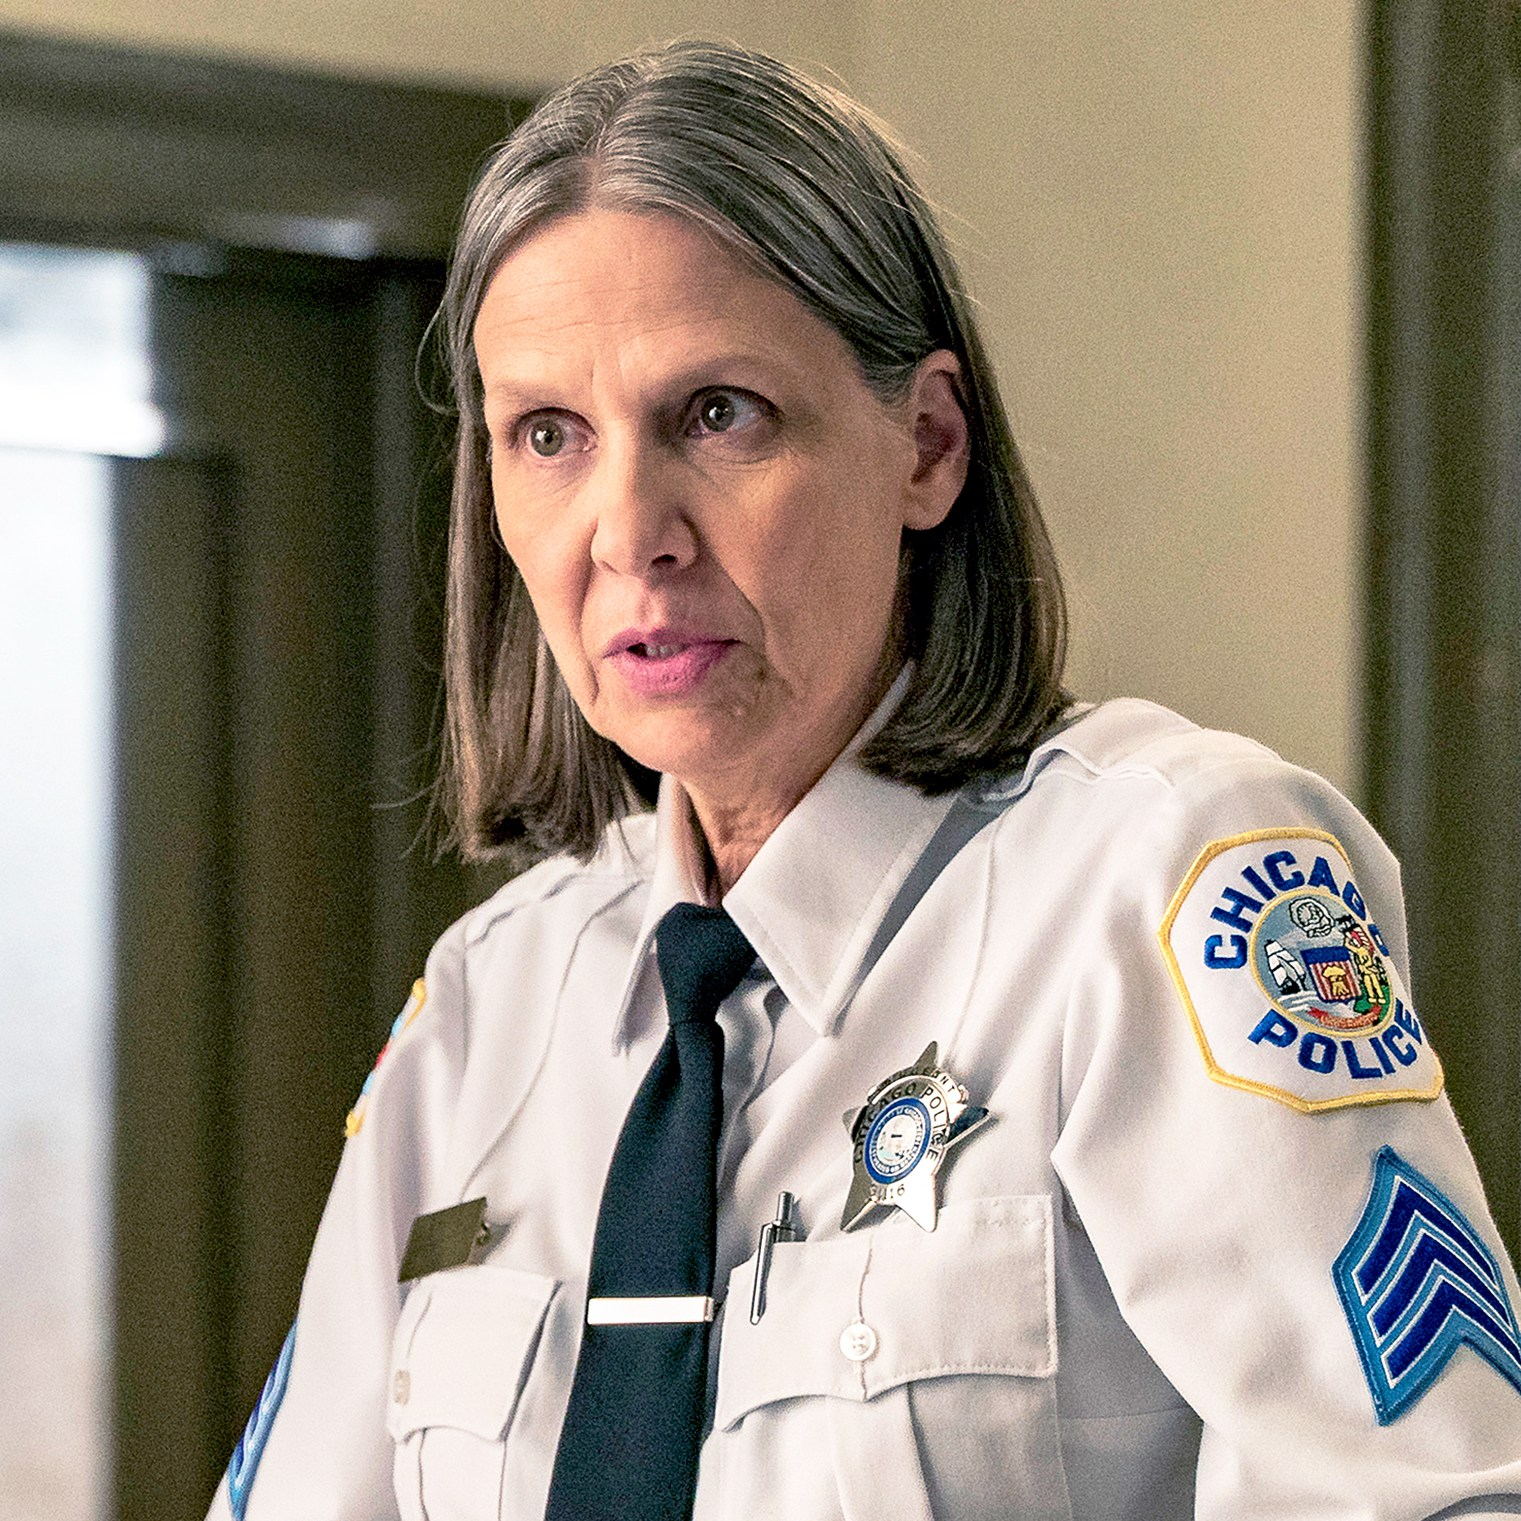 Amy Morton as Trudy Platt on Chicago P.D.